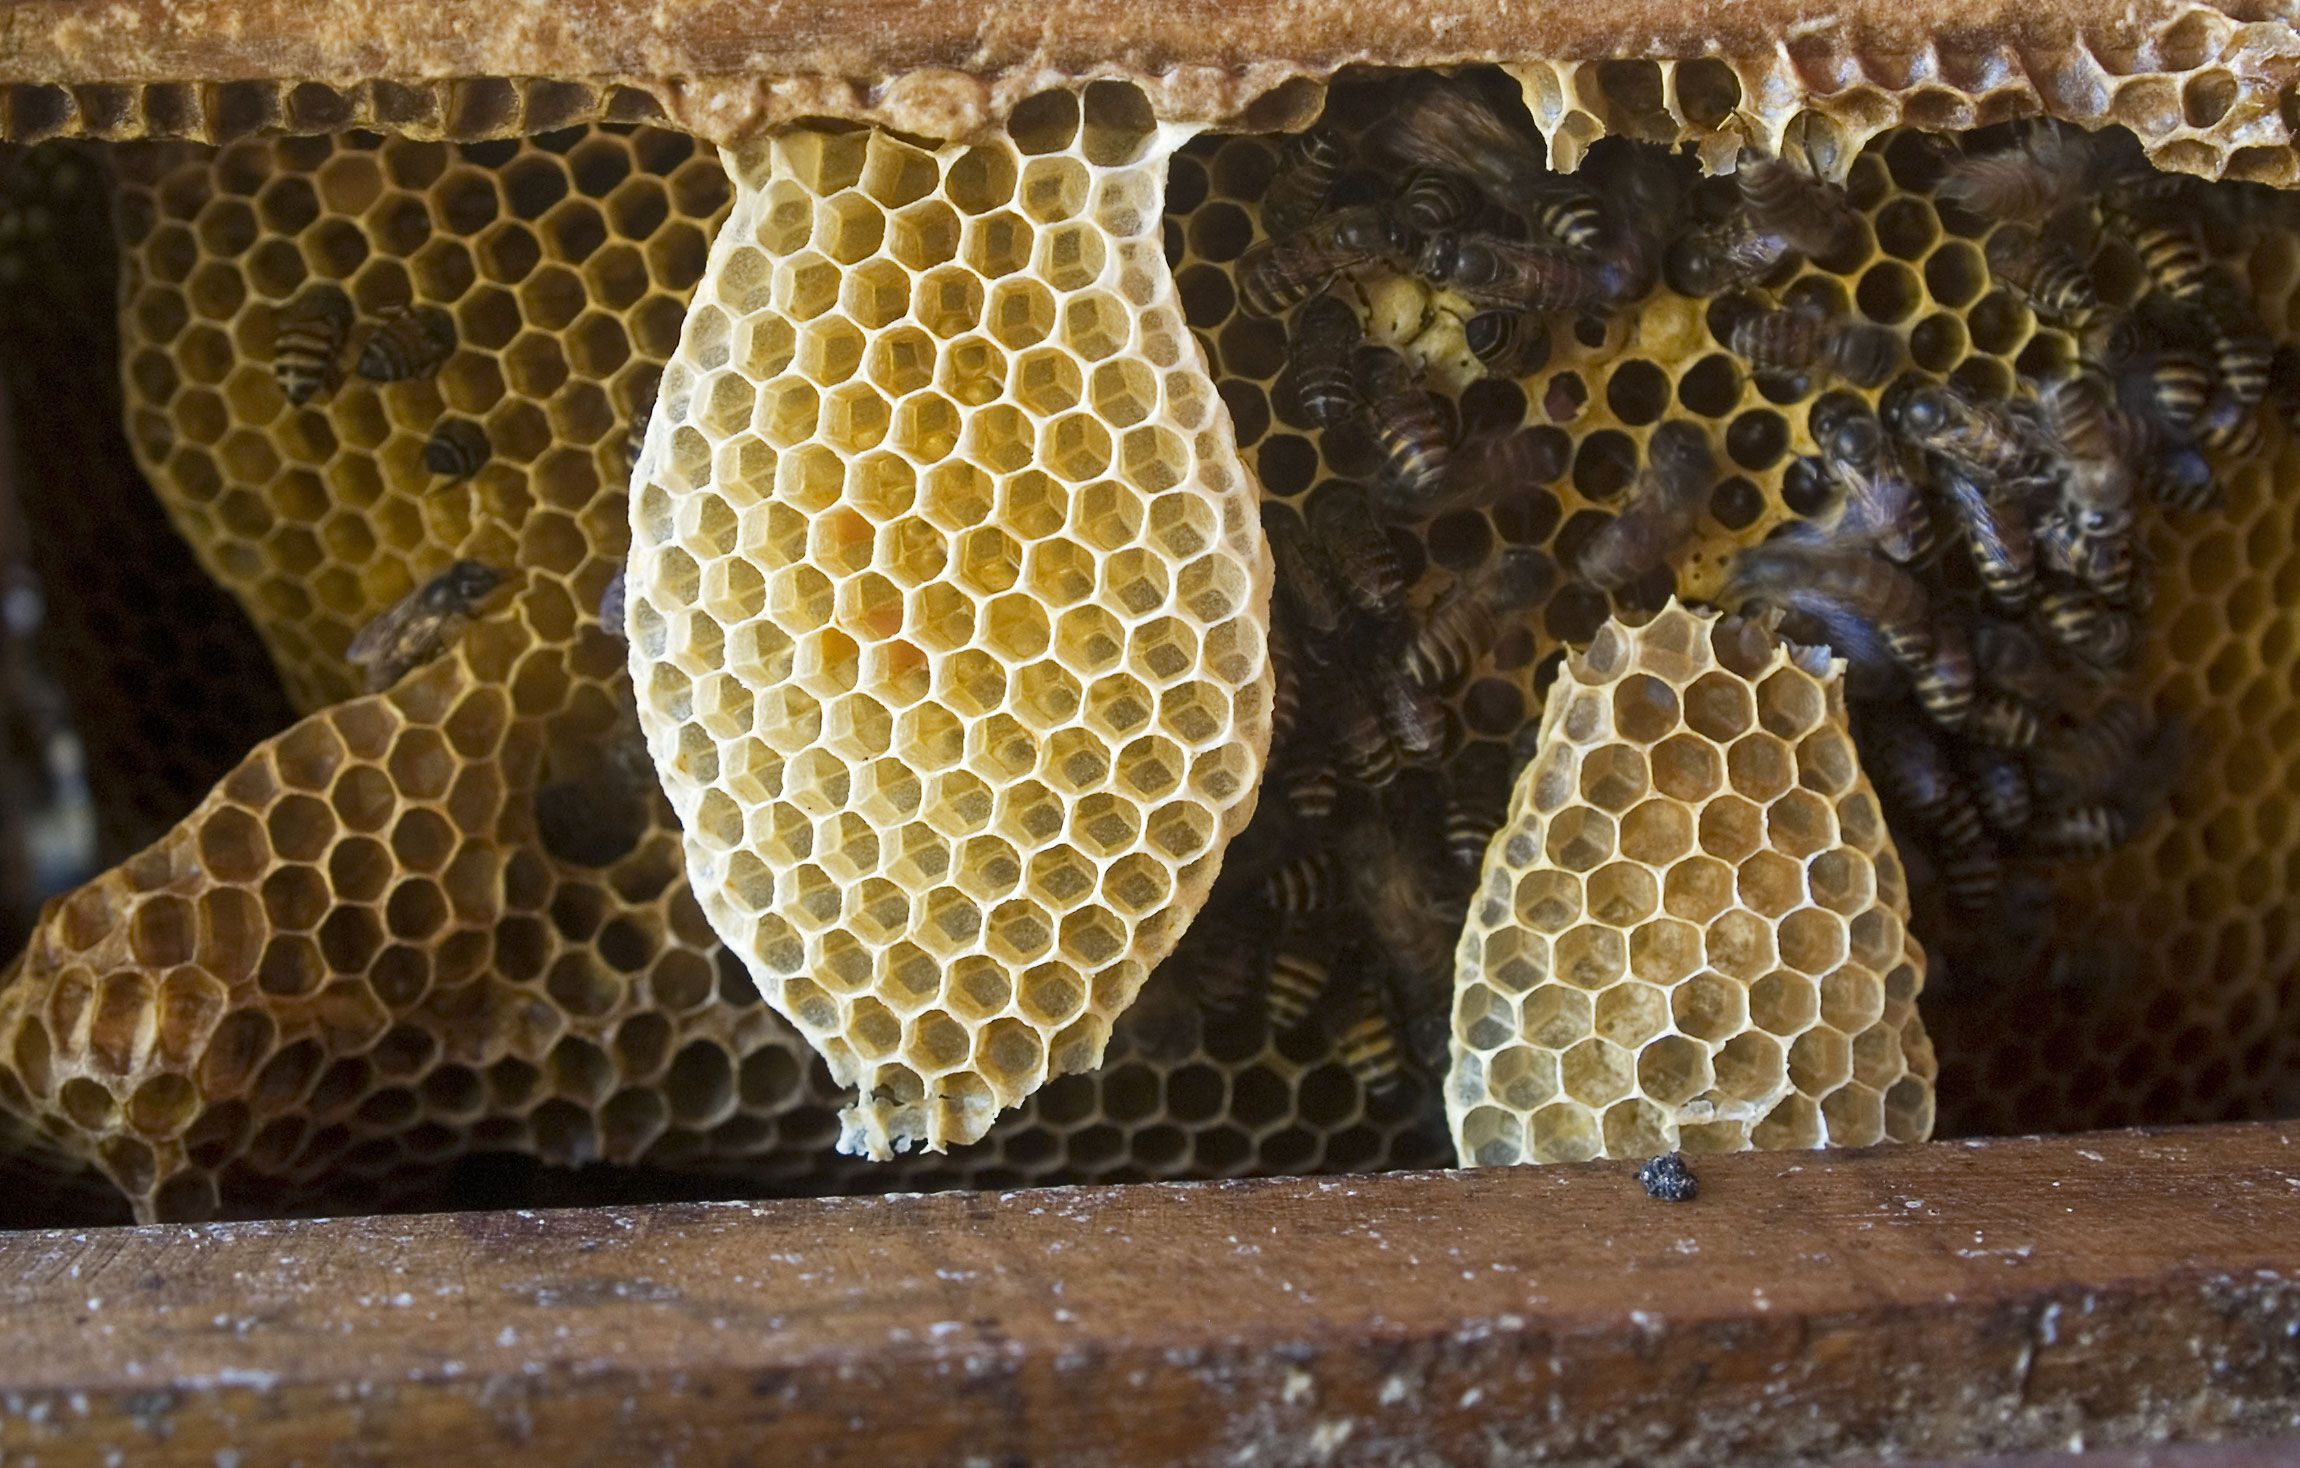 The perfect geometry of honeycombs. A beauty! | Amazing ...